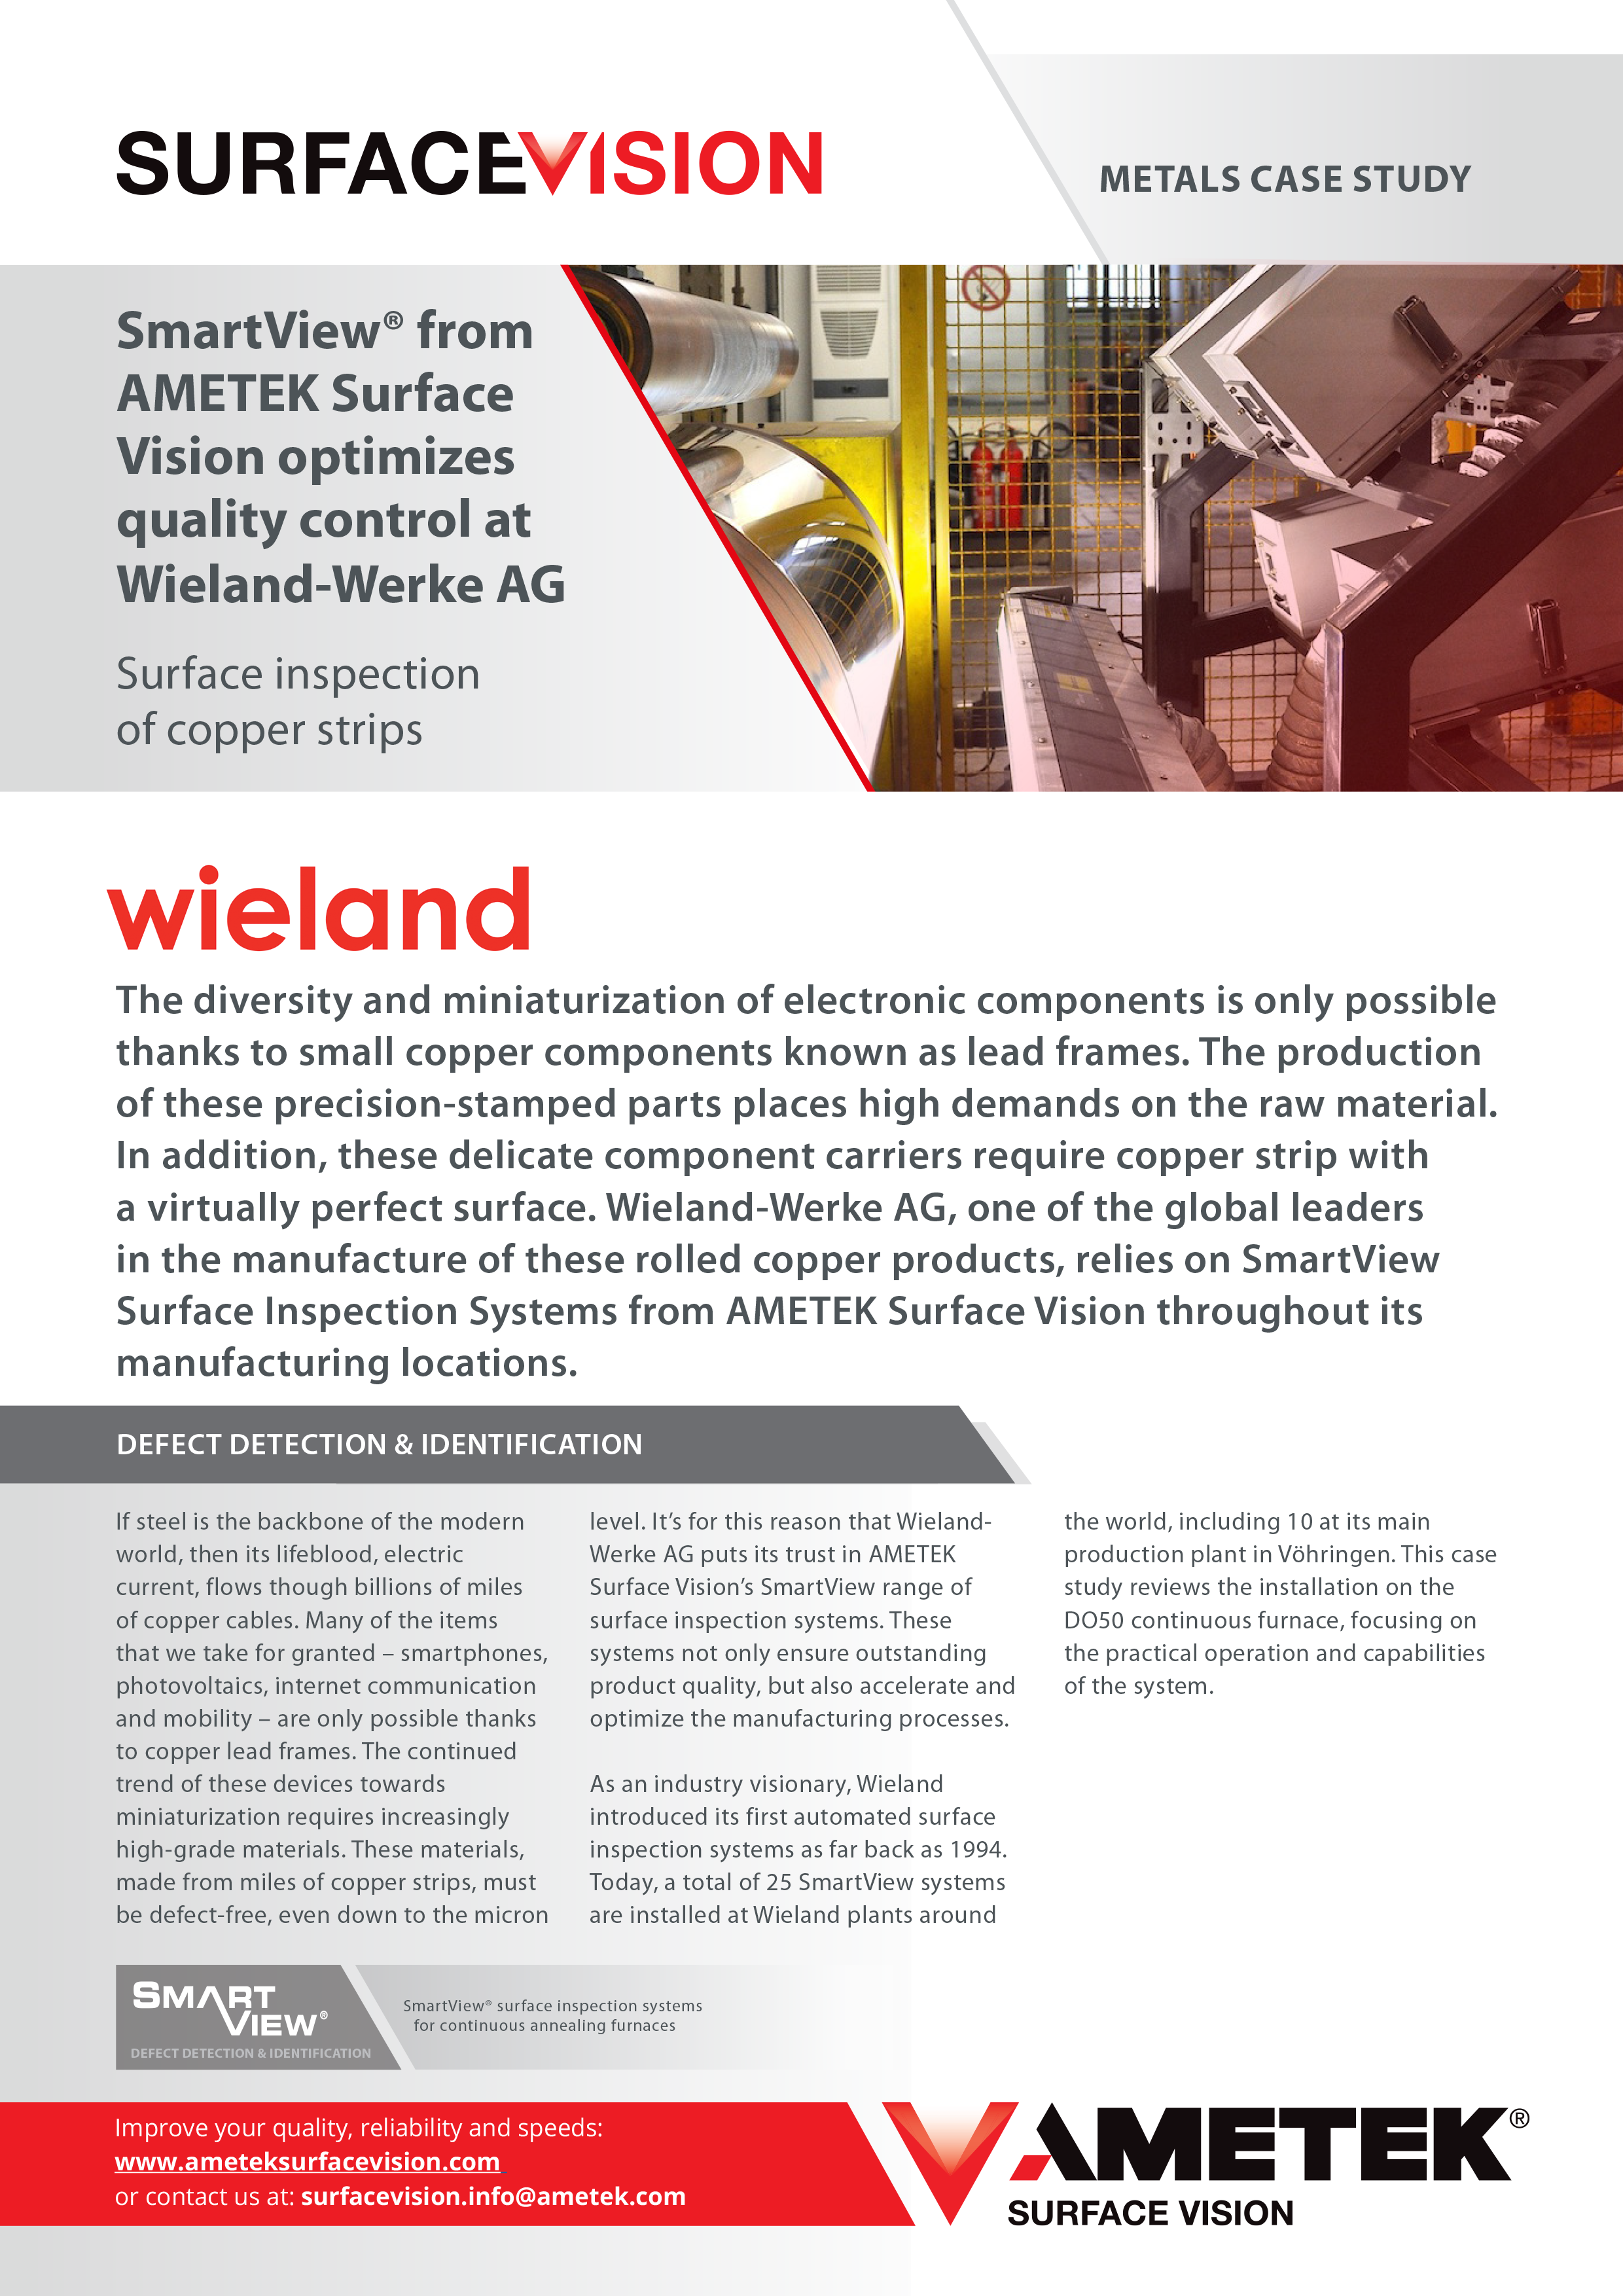 SmartView® optimizes quality control at Wieland-Werke AG with surface inspection of copper strips.